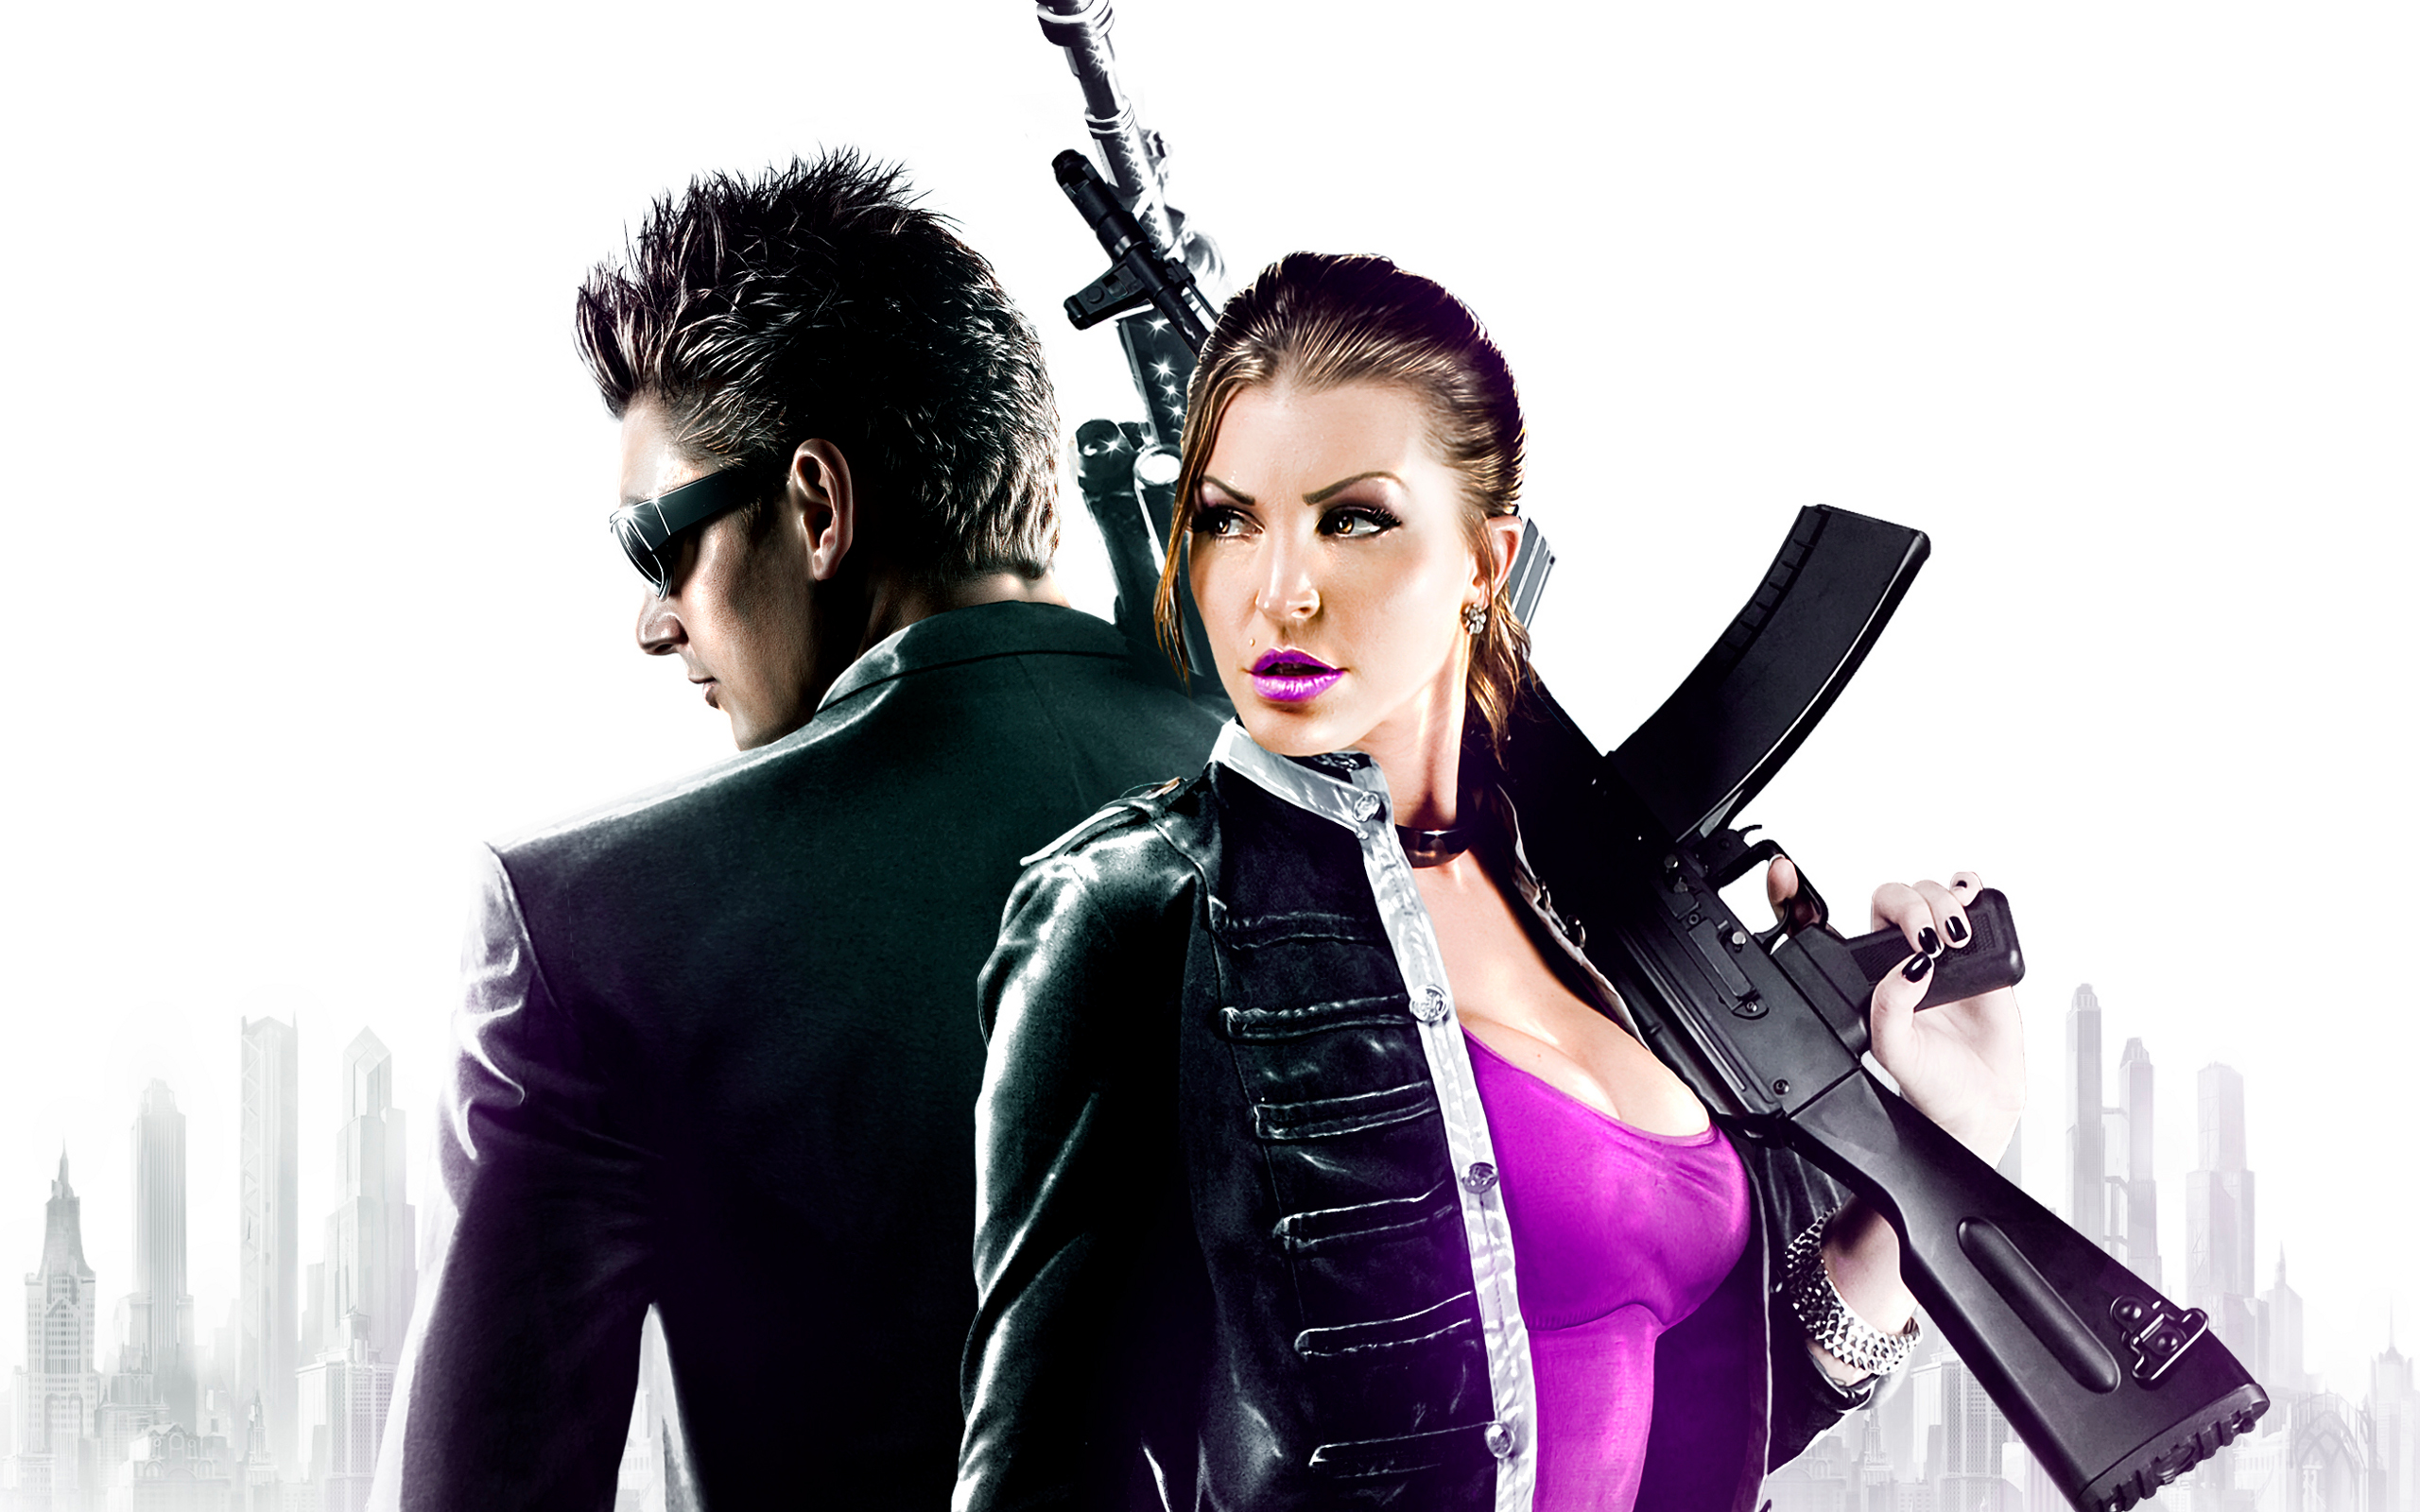 Saints row wallpapers wallpaper cave.